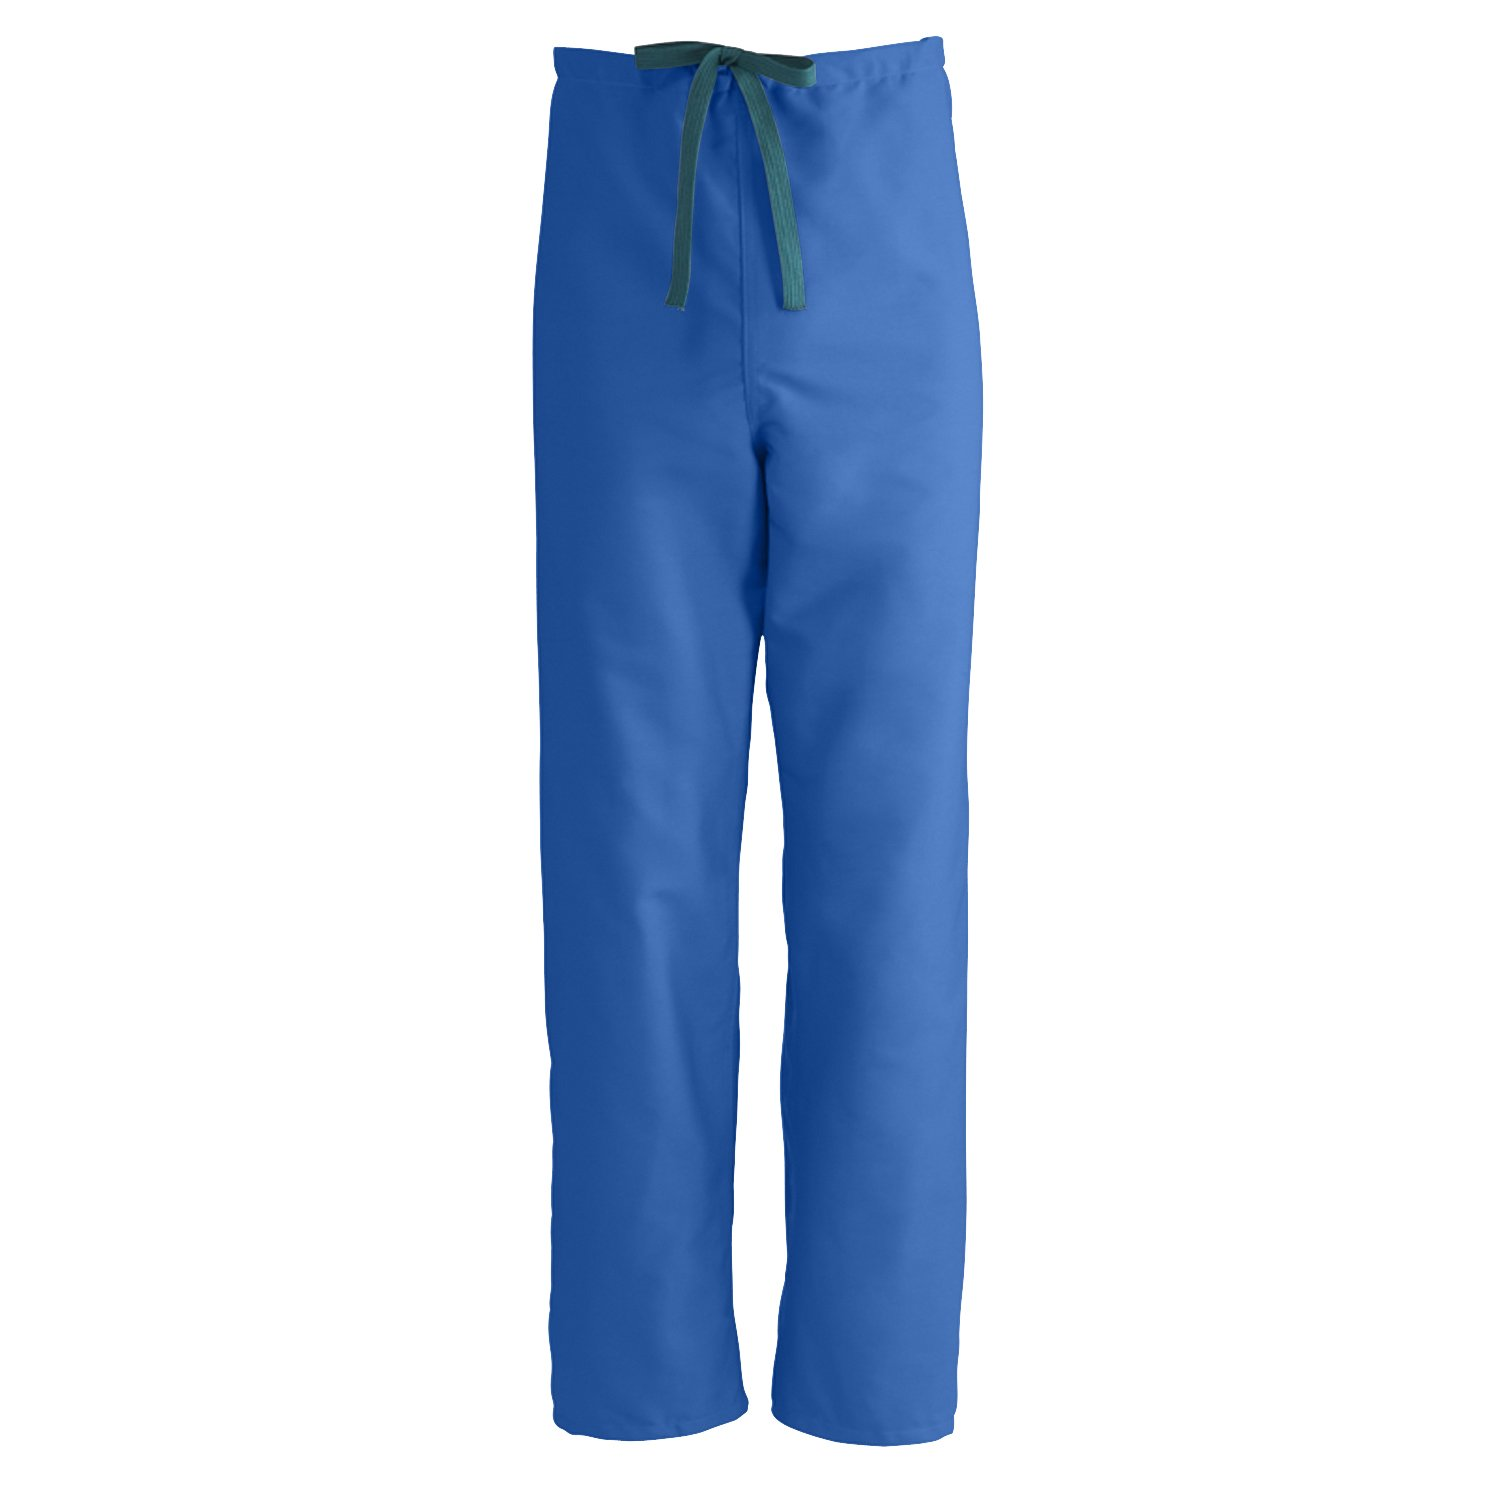 Medline PerforMAX Reversible Drawstring Scrub Pant, ANG-CC, Small, Royal Blue